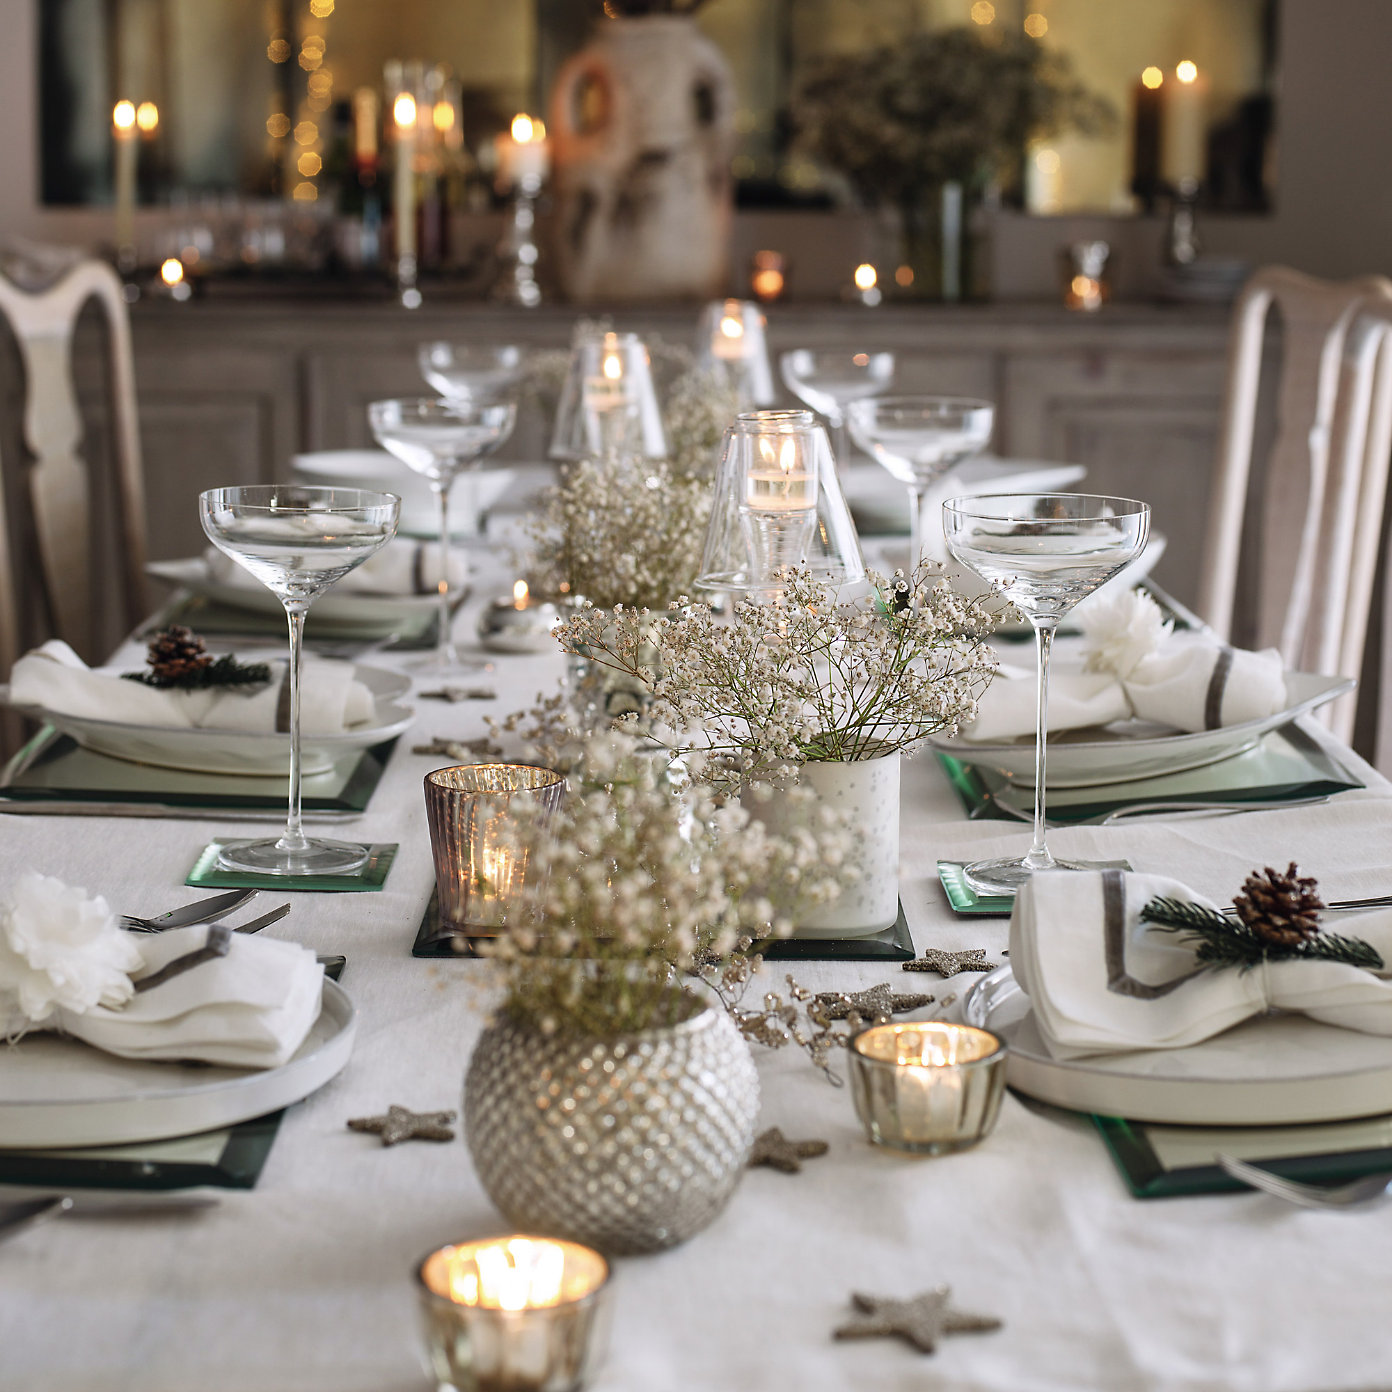 tropical-floral-arrangements-mexico-style-flowers-elena-damy-floral-design-event-planning-corporate-events-mexico.jpg